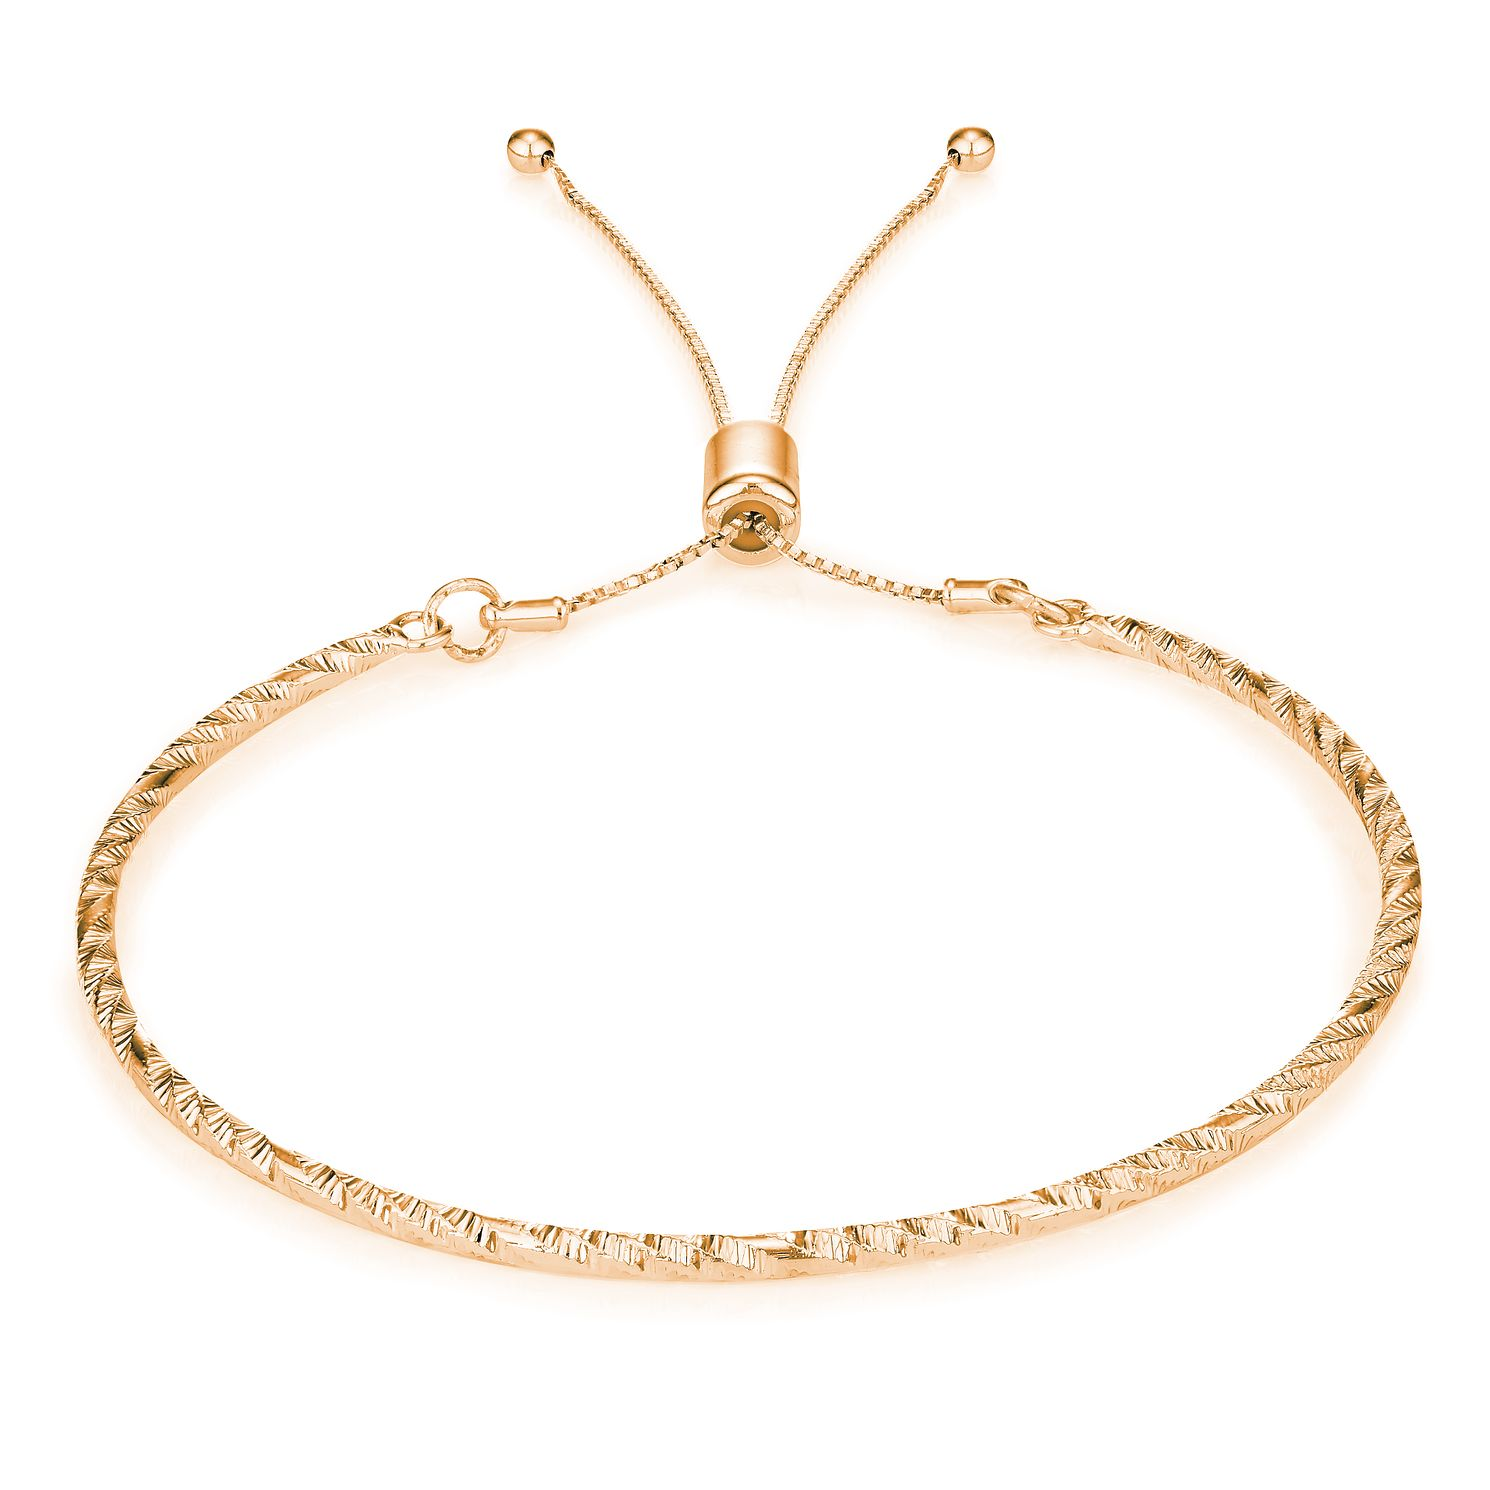 Buckley London Rose Gold Tone Ridley Bracelet - Product number 1012053